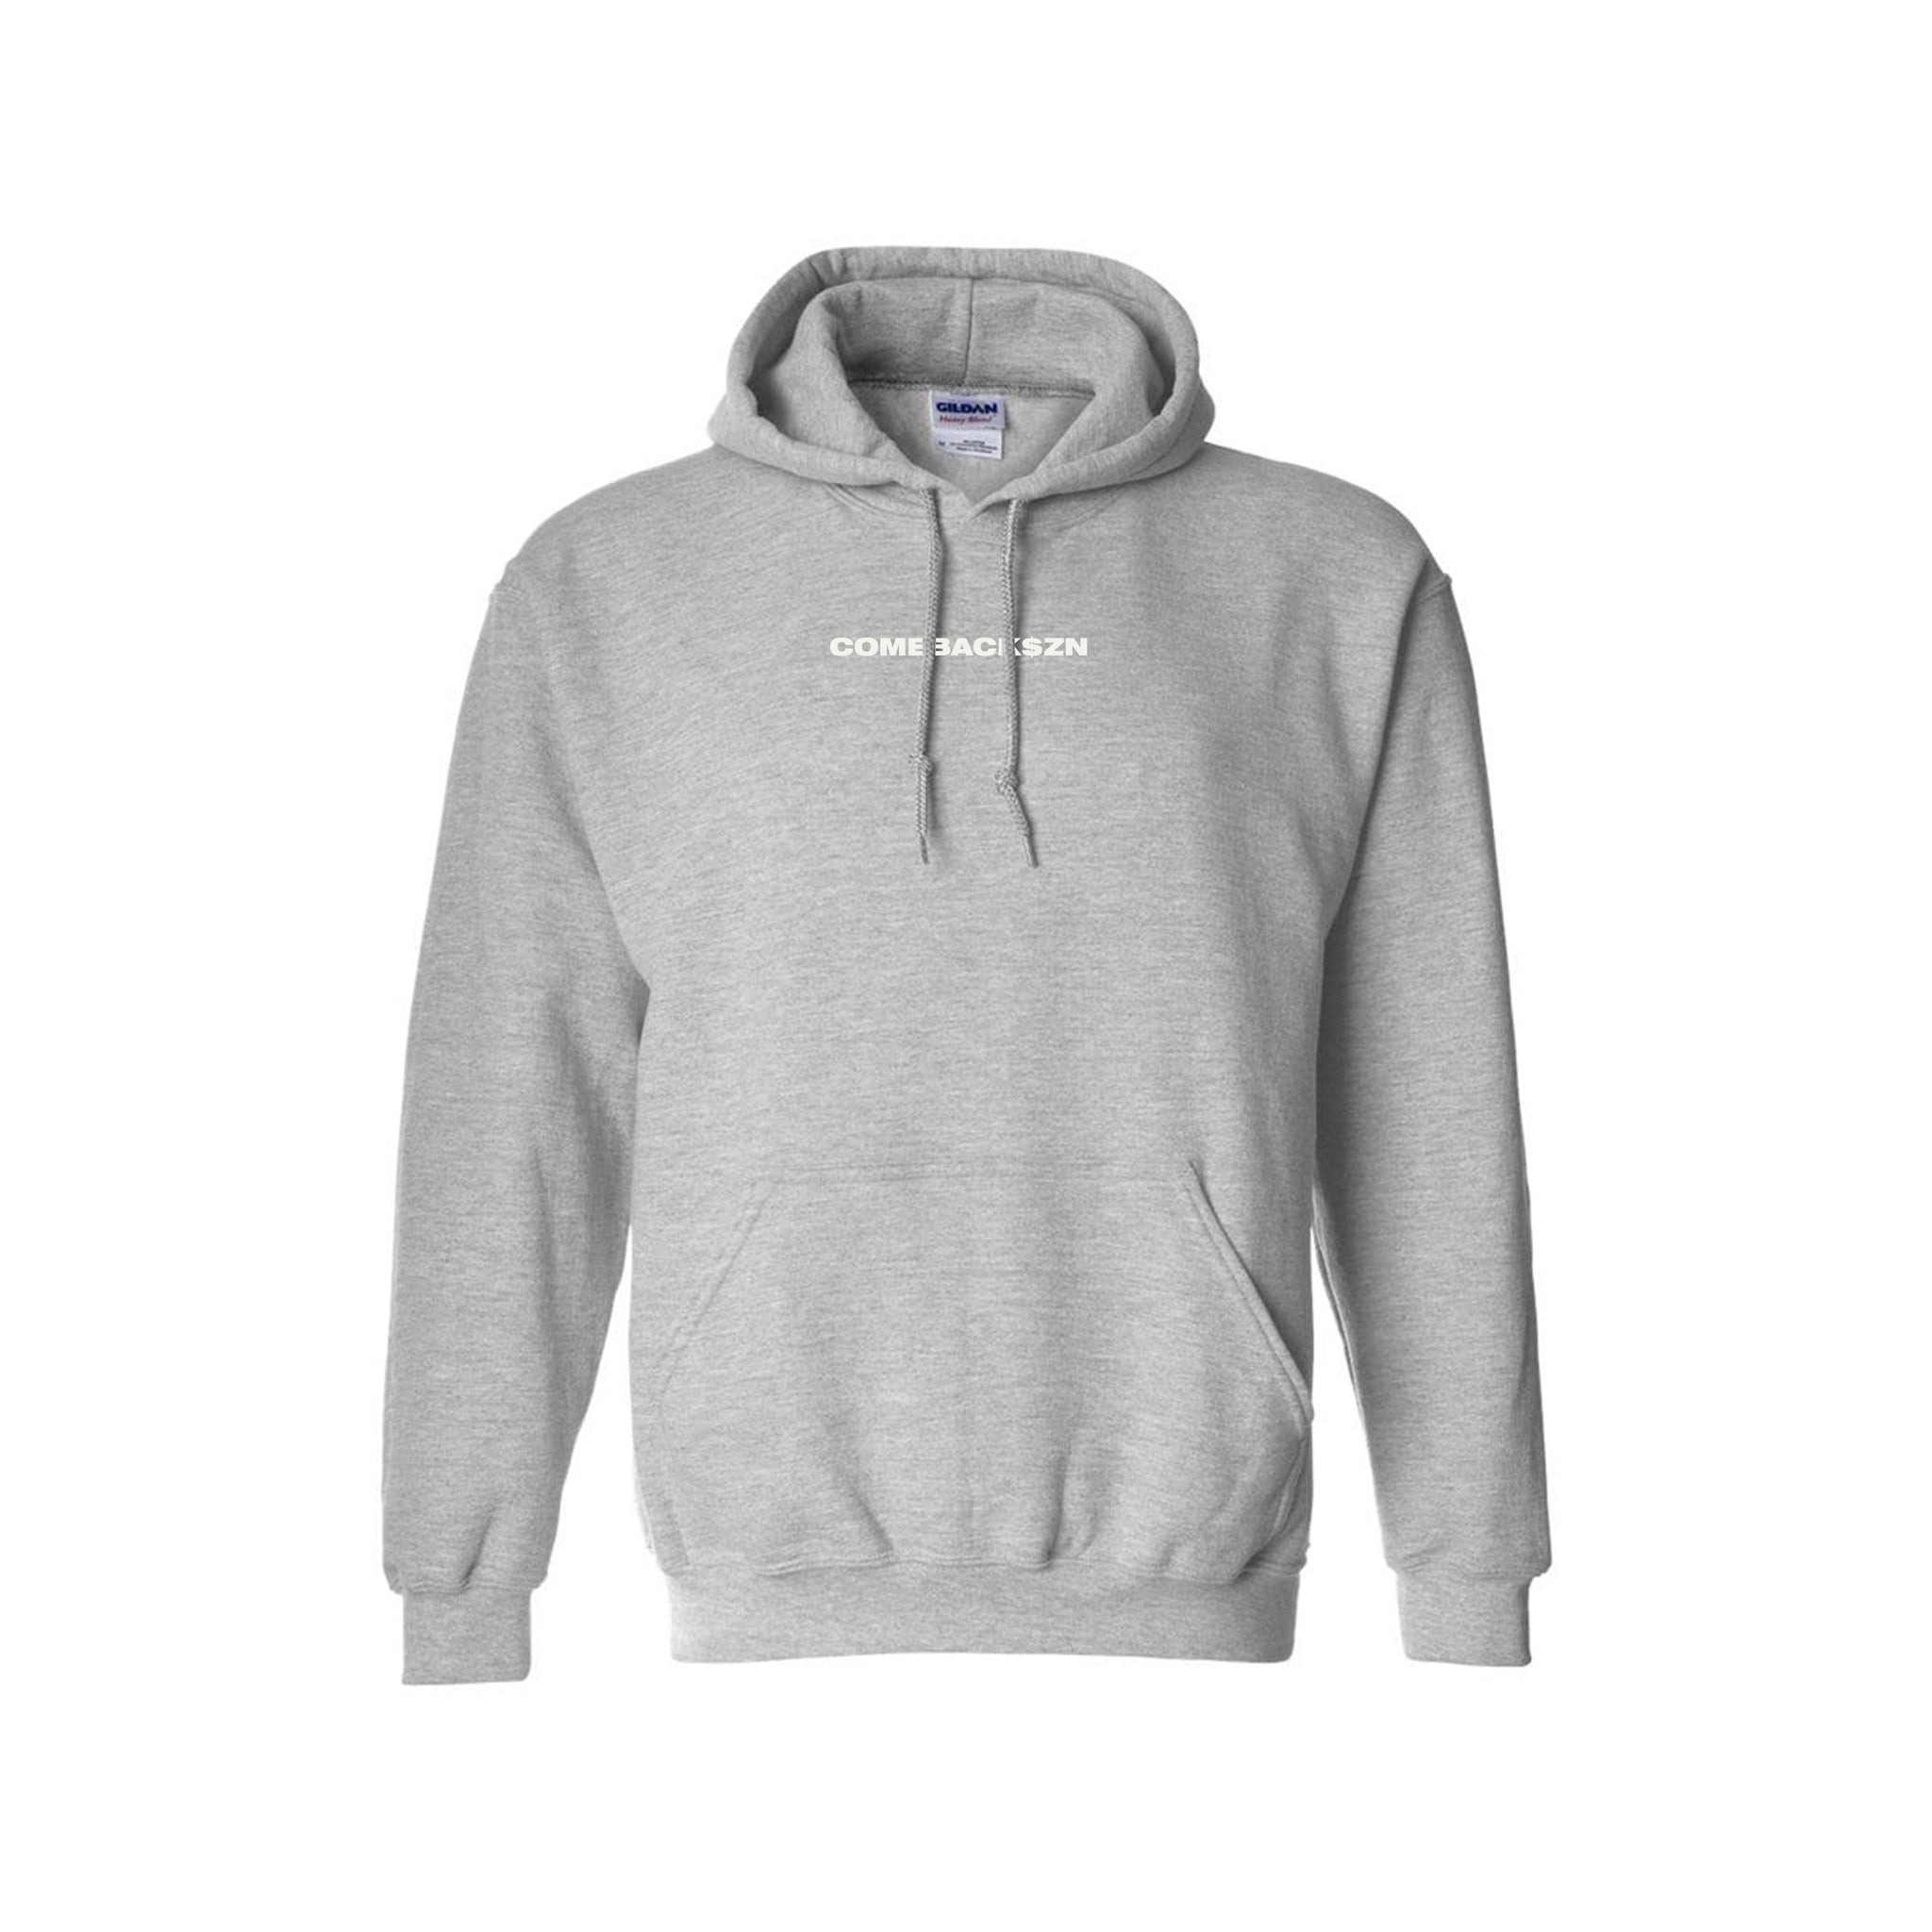 GREY COMEBACKSZN PULLOVER HOODIE